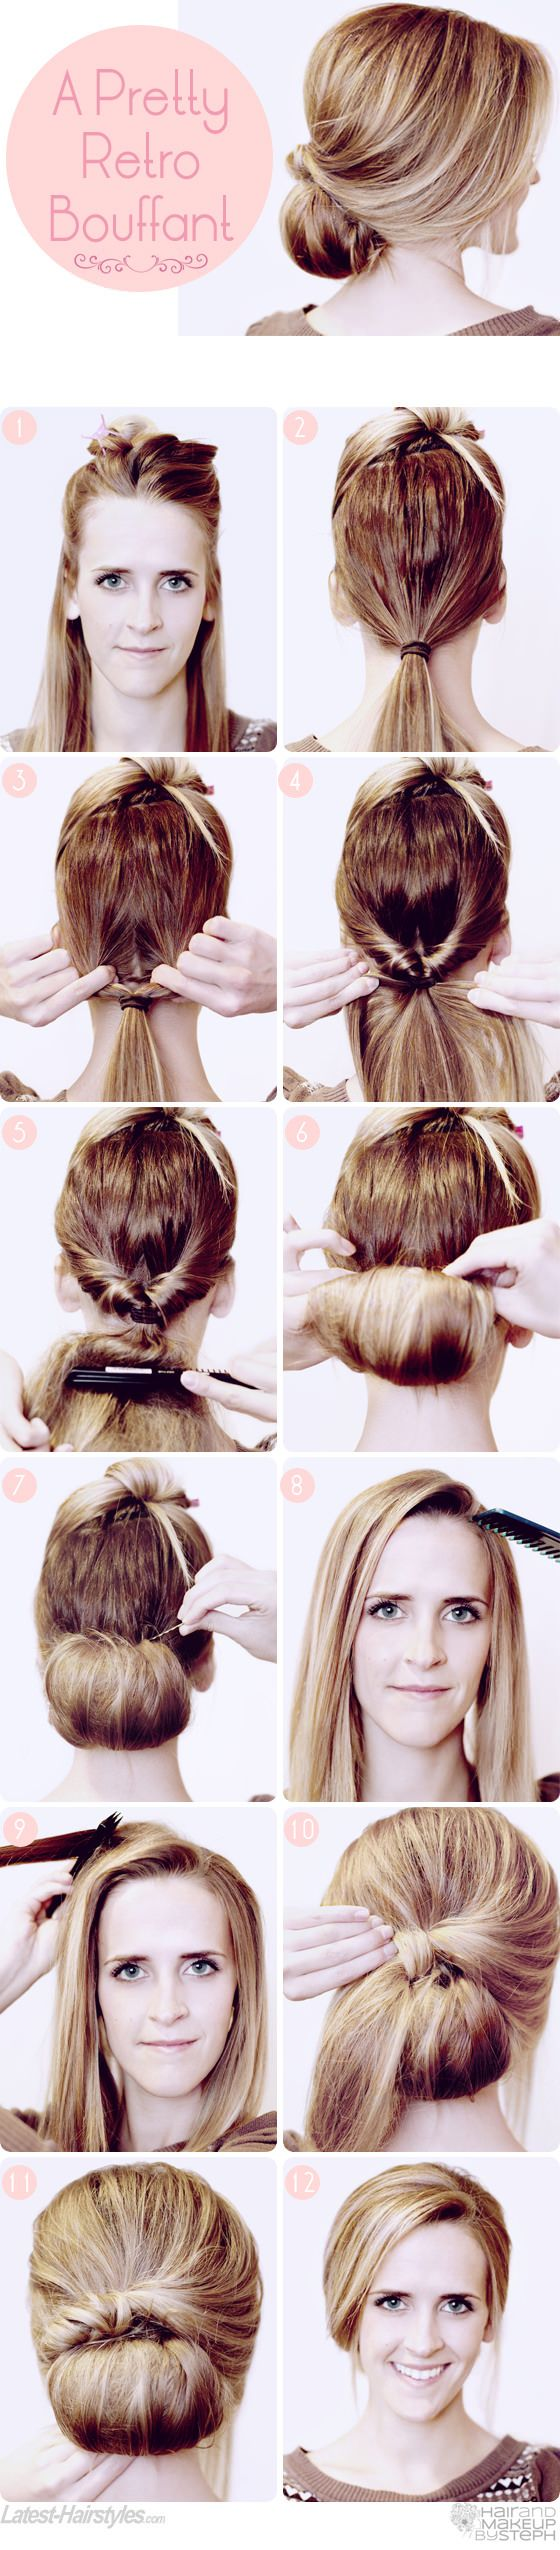 The Best Bouffant Ever: Retro Style! Fab styling by @Stephanie Brinkerhoff :) Get the full tutorial here...    http://www.latest-hairstyles.com/tutorials/retro-bouffant.html